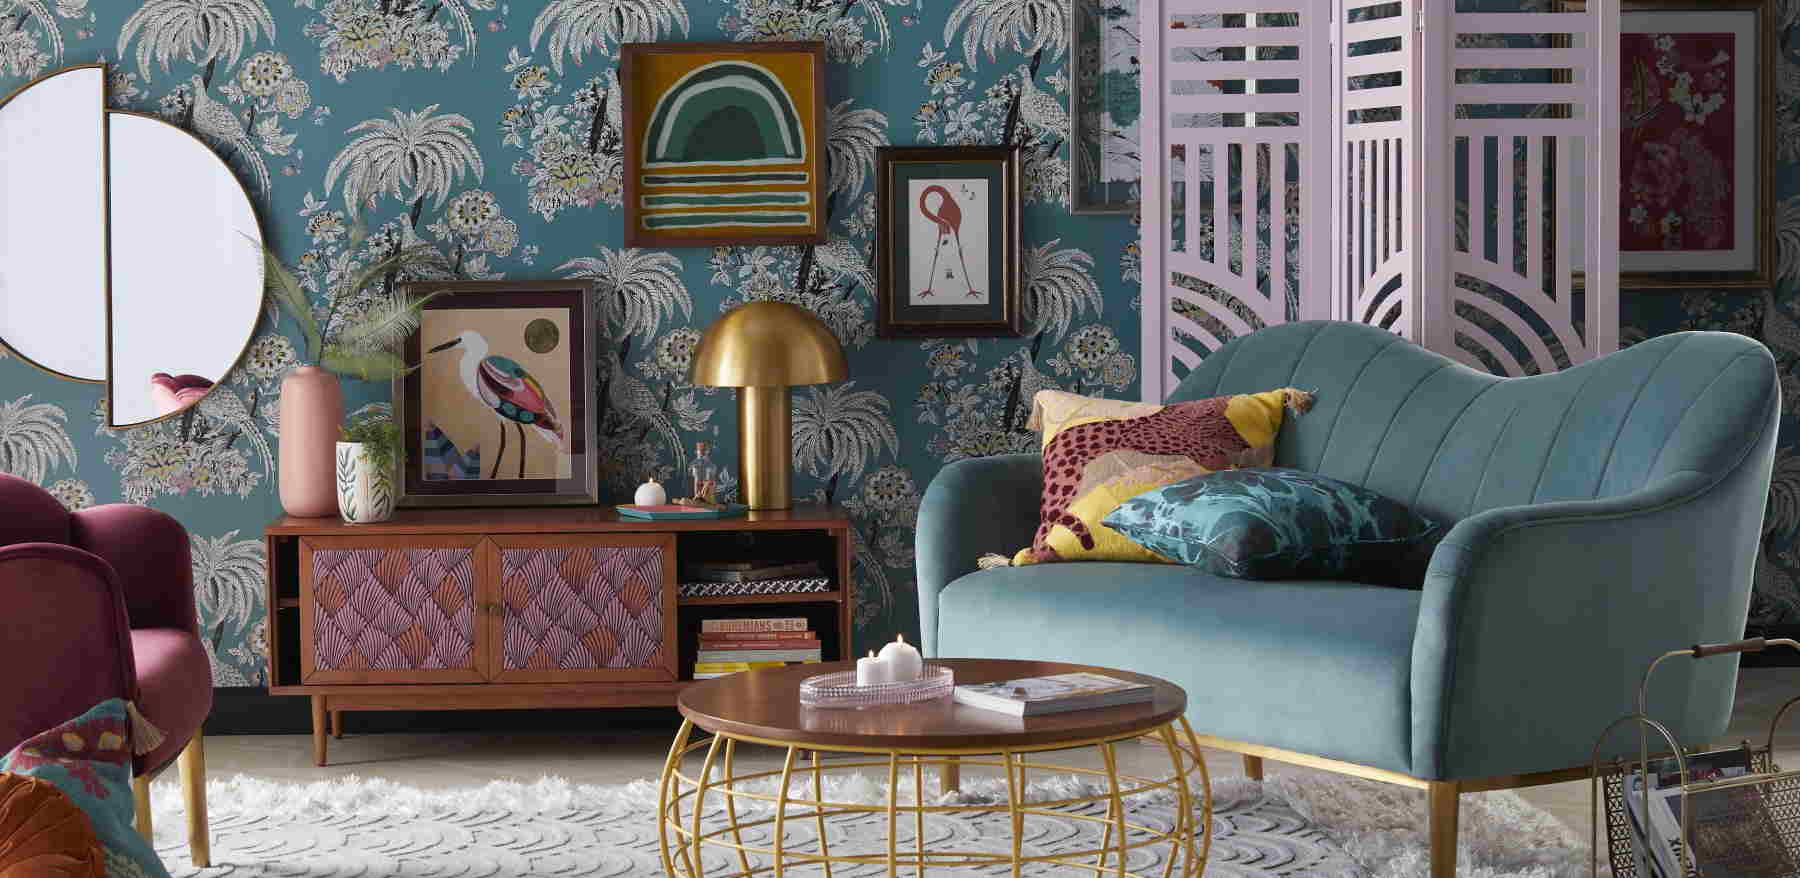 Living Room Ideas Tips For Not Making the Wrong Choice